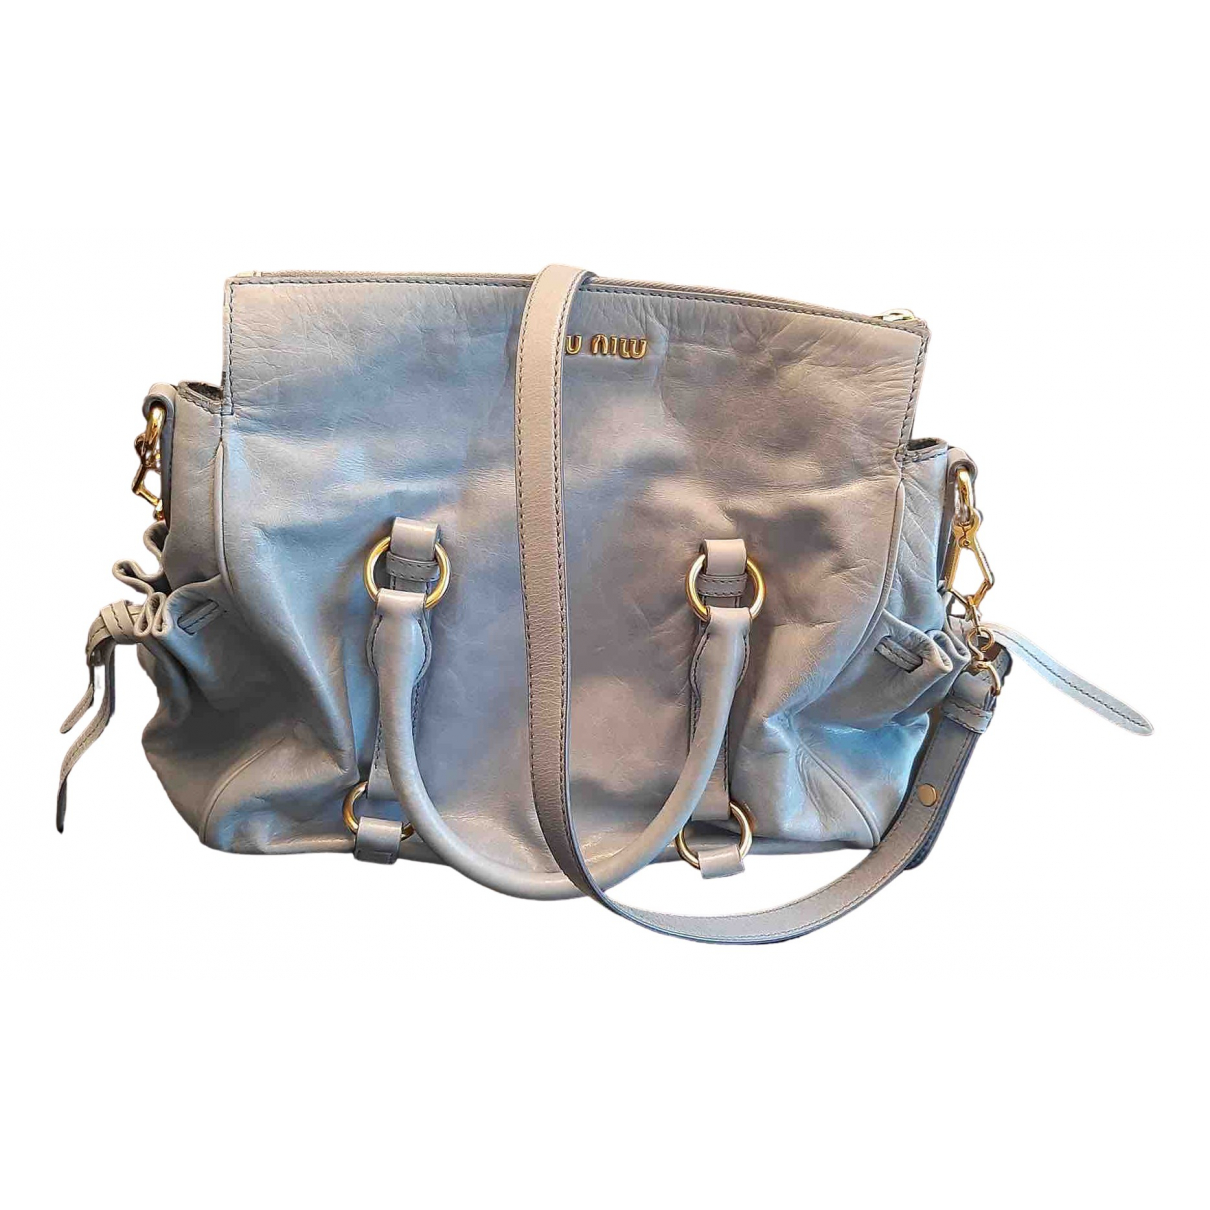 Miu Miu N Grey Leather handbag for Women N